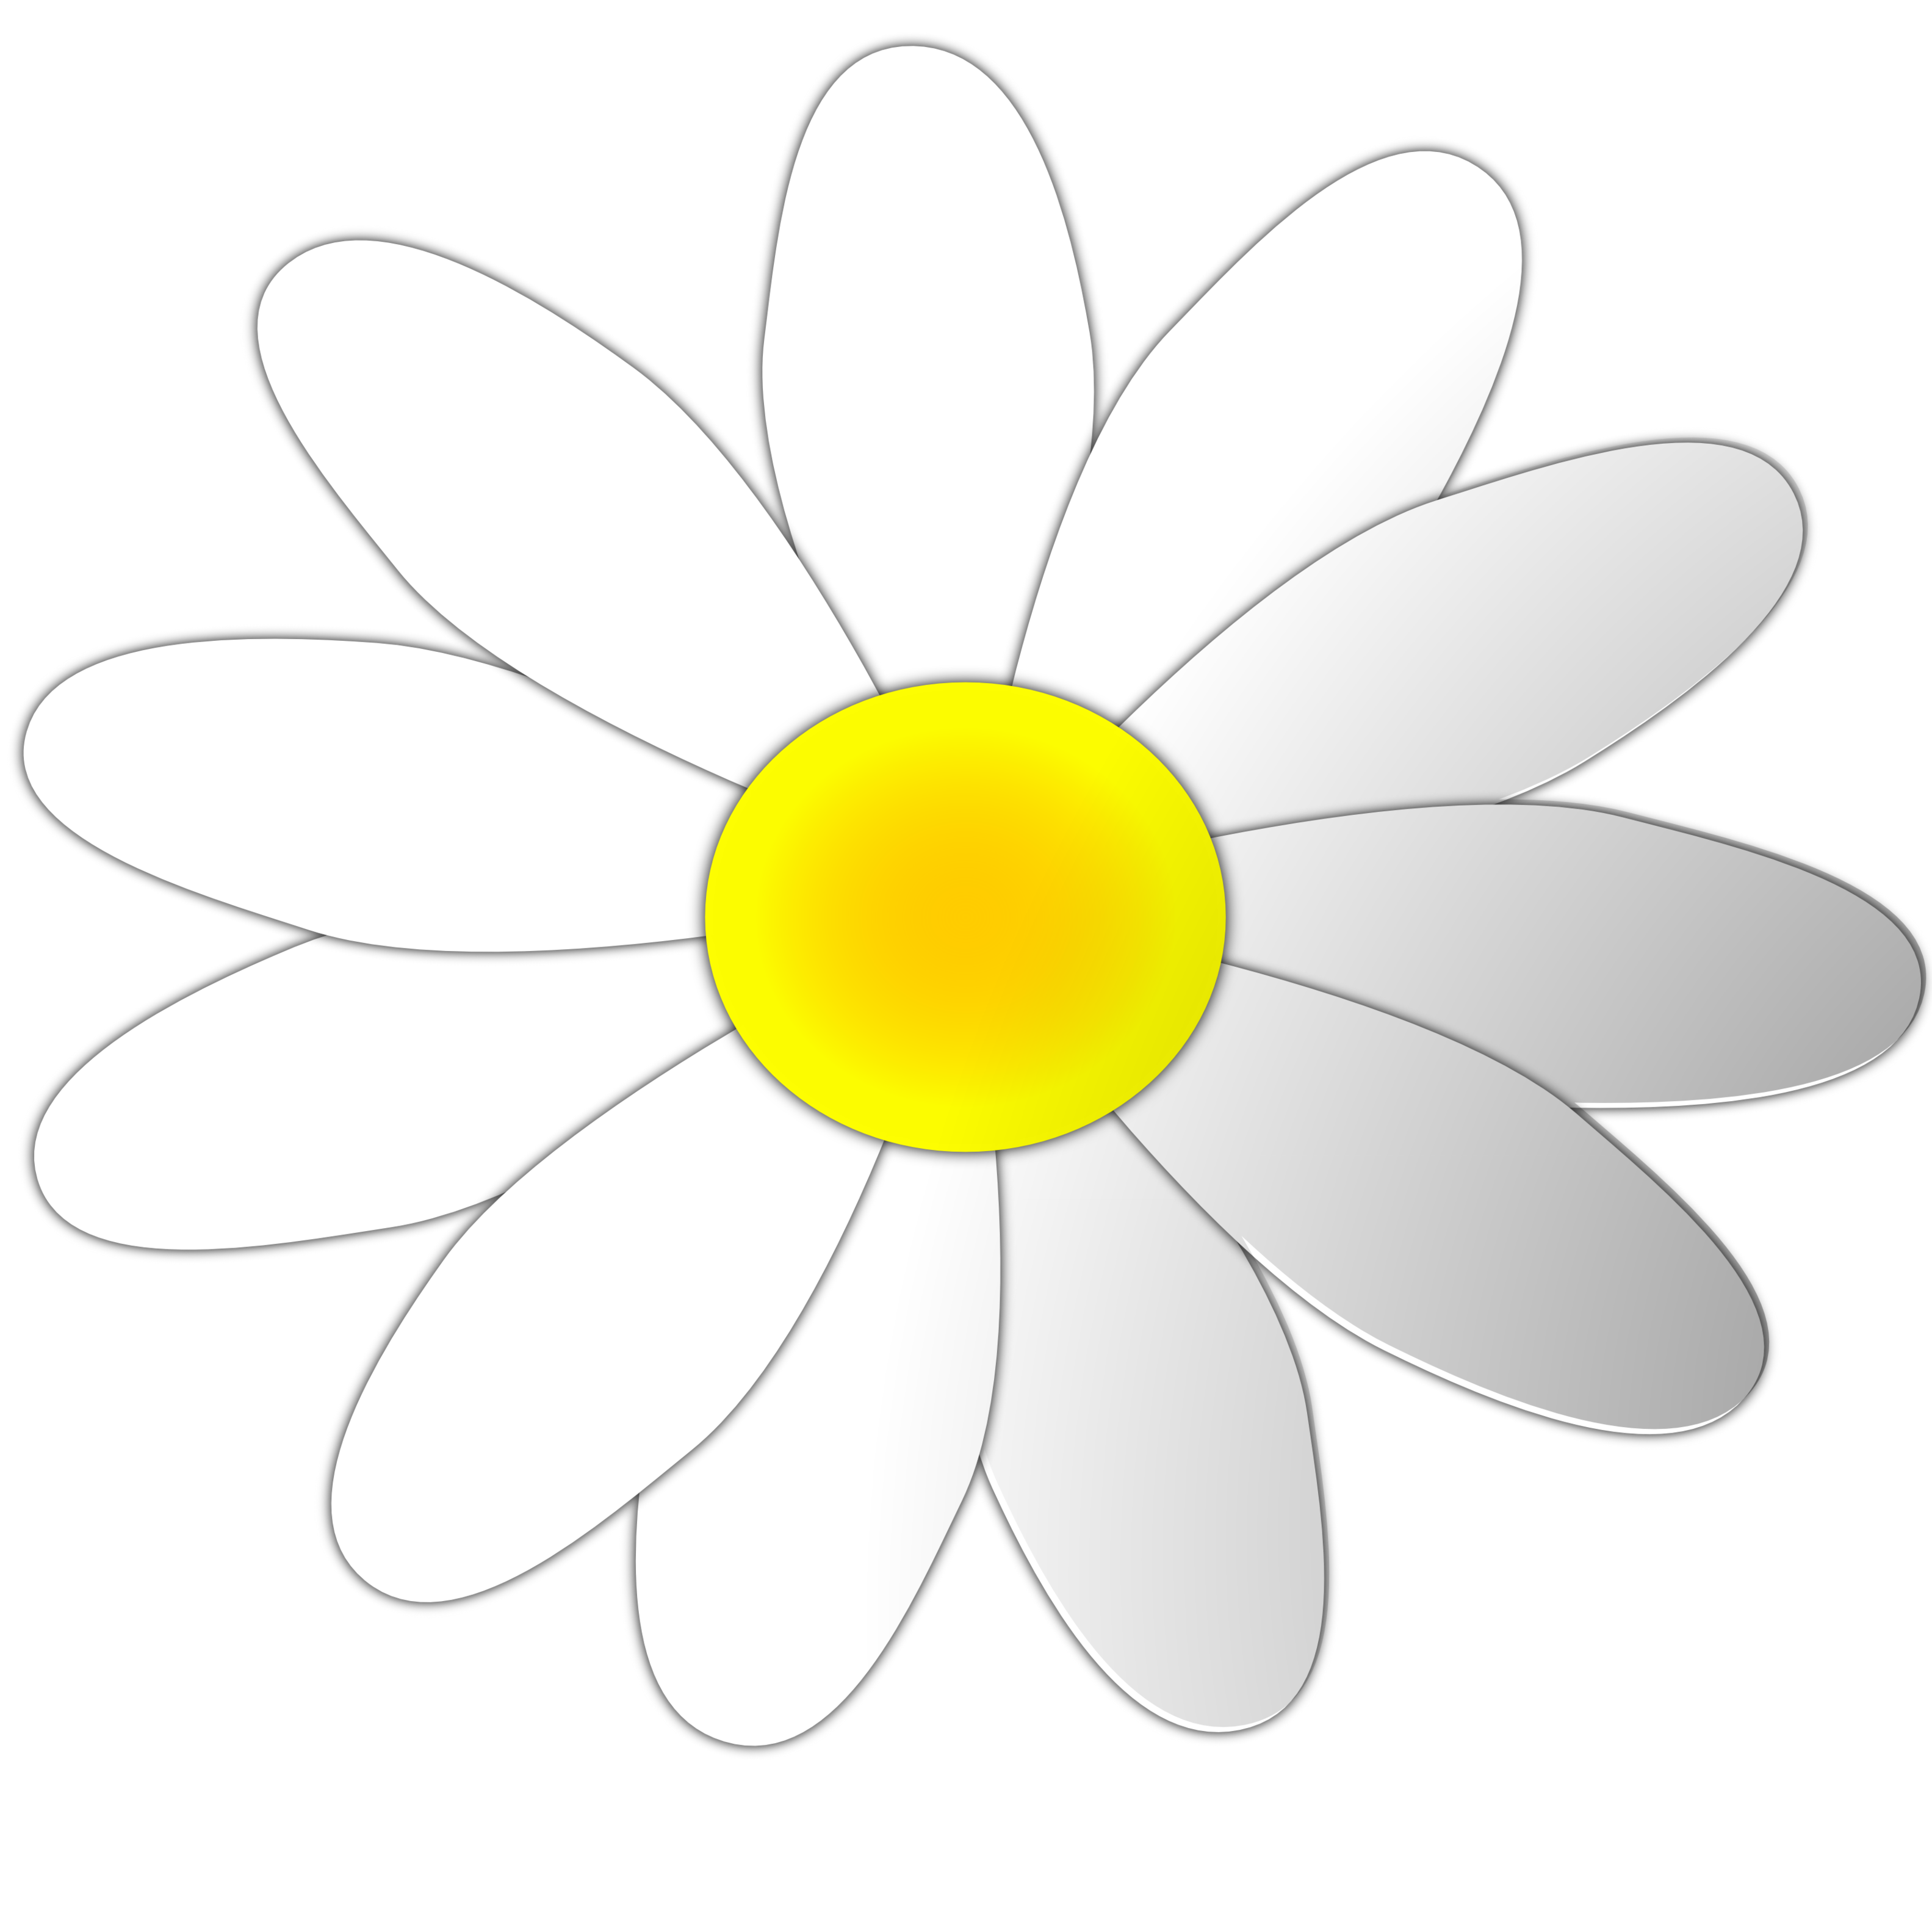 Daisy clipart. Free flower cliparts download